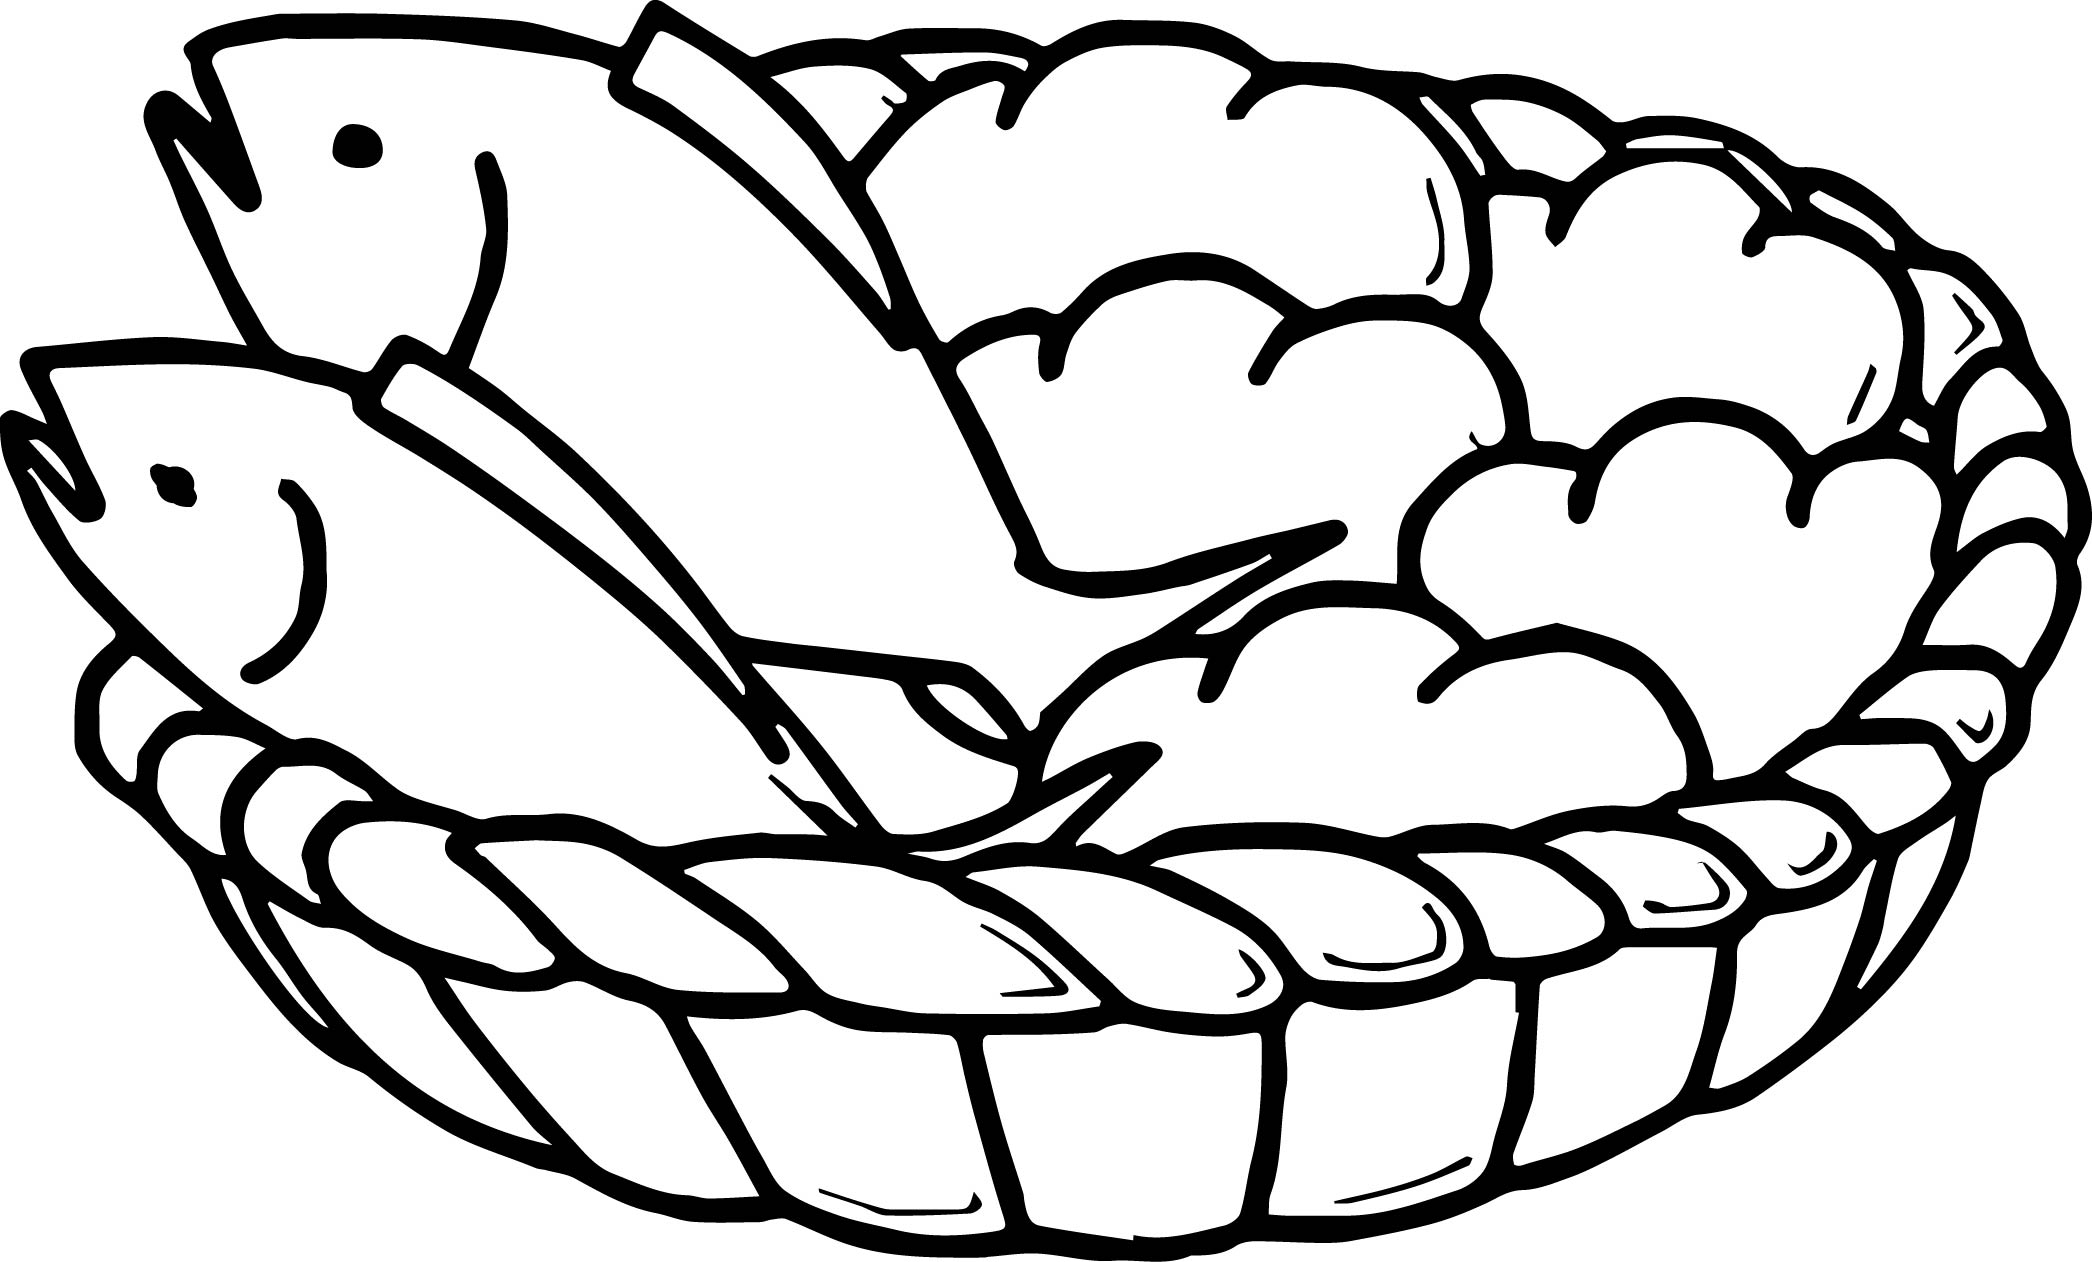 5 Loaves Bread And 2 Fish Coloring Page Wecoloringpage